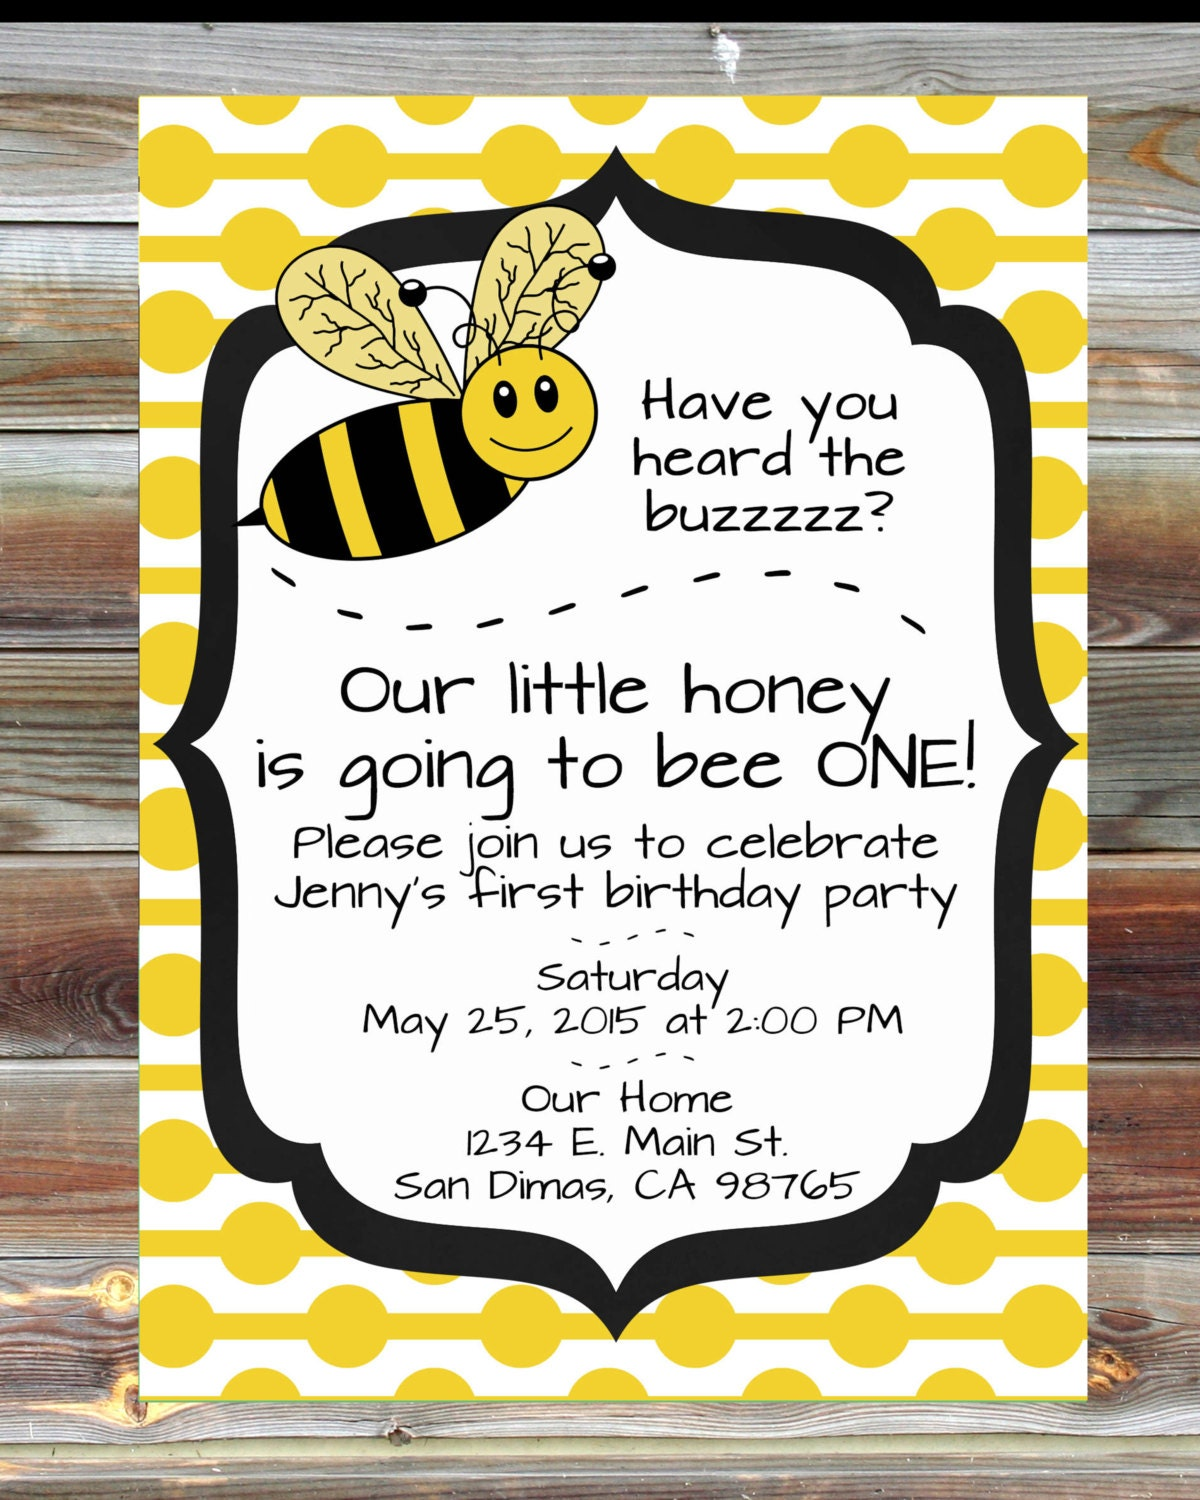 Bee theme first birthday invitation 1st birthday boy girl etsy bee theme first birthday invitation 1st birthday boy girl custom invitation boy or girl bee theme first birthday party invitation filmwisefo